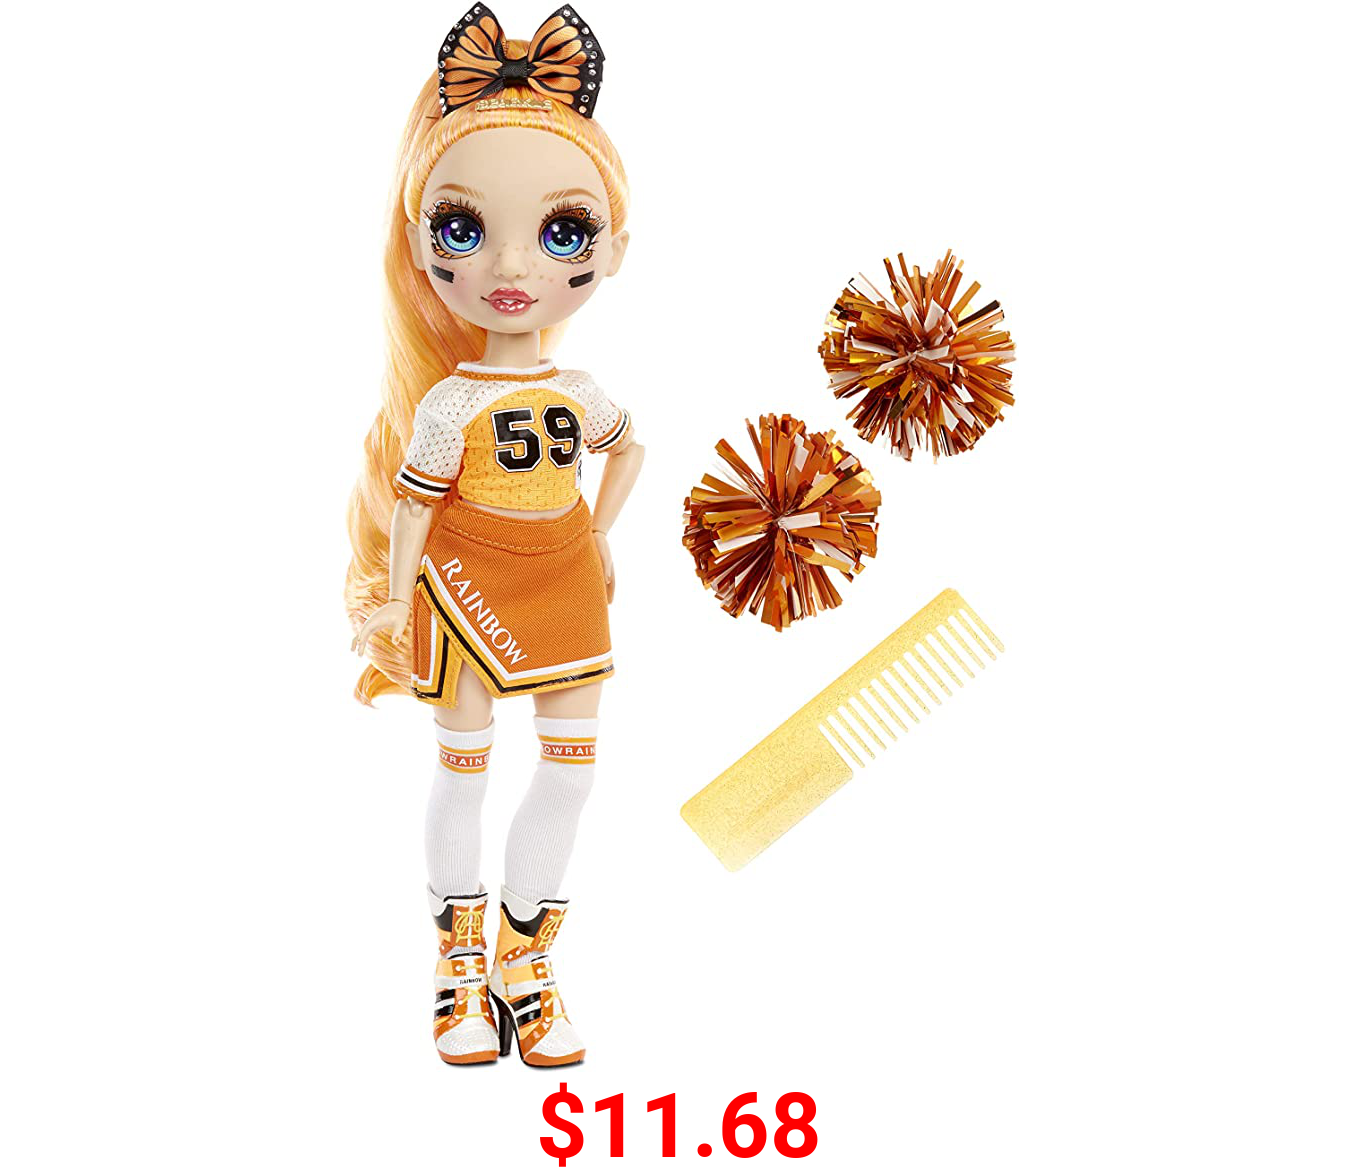 Rainbow High Cheer Poppy Rowan – Orange Cheerleader Fashion Doll with 2 Pom Poms and Doll Accessories, Great Gift for Kids 6-12 Years Old